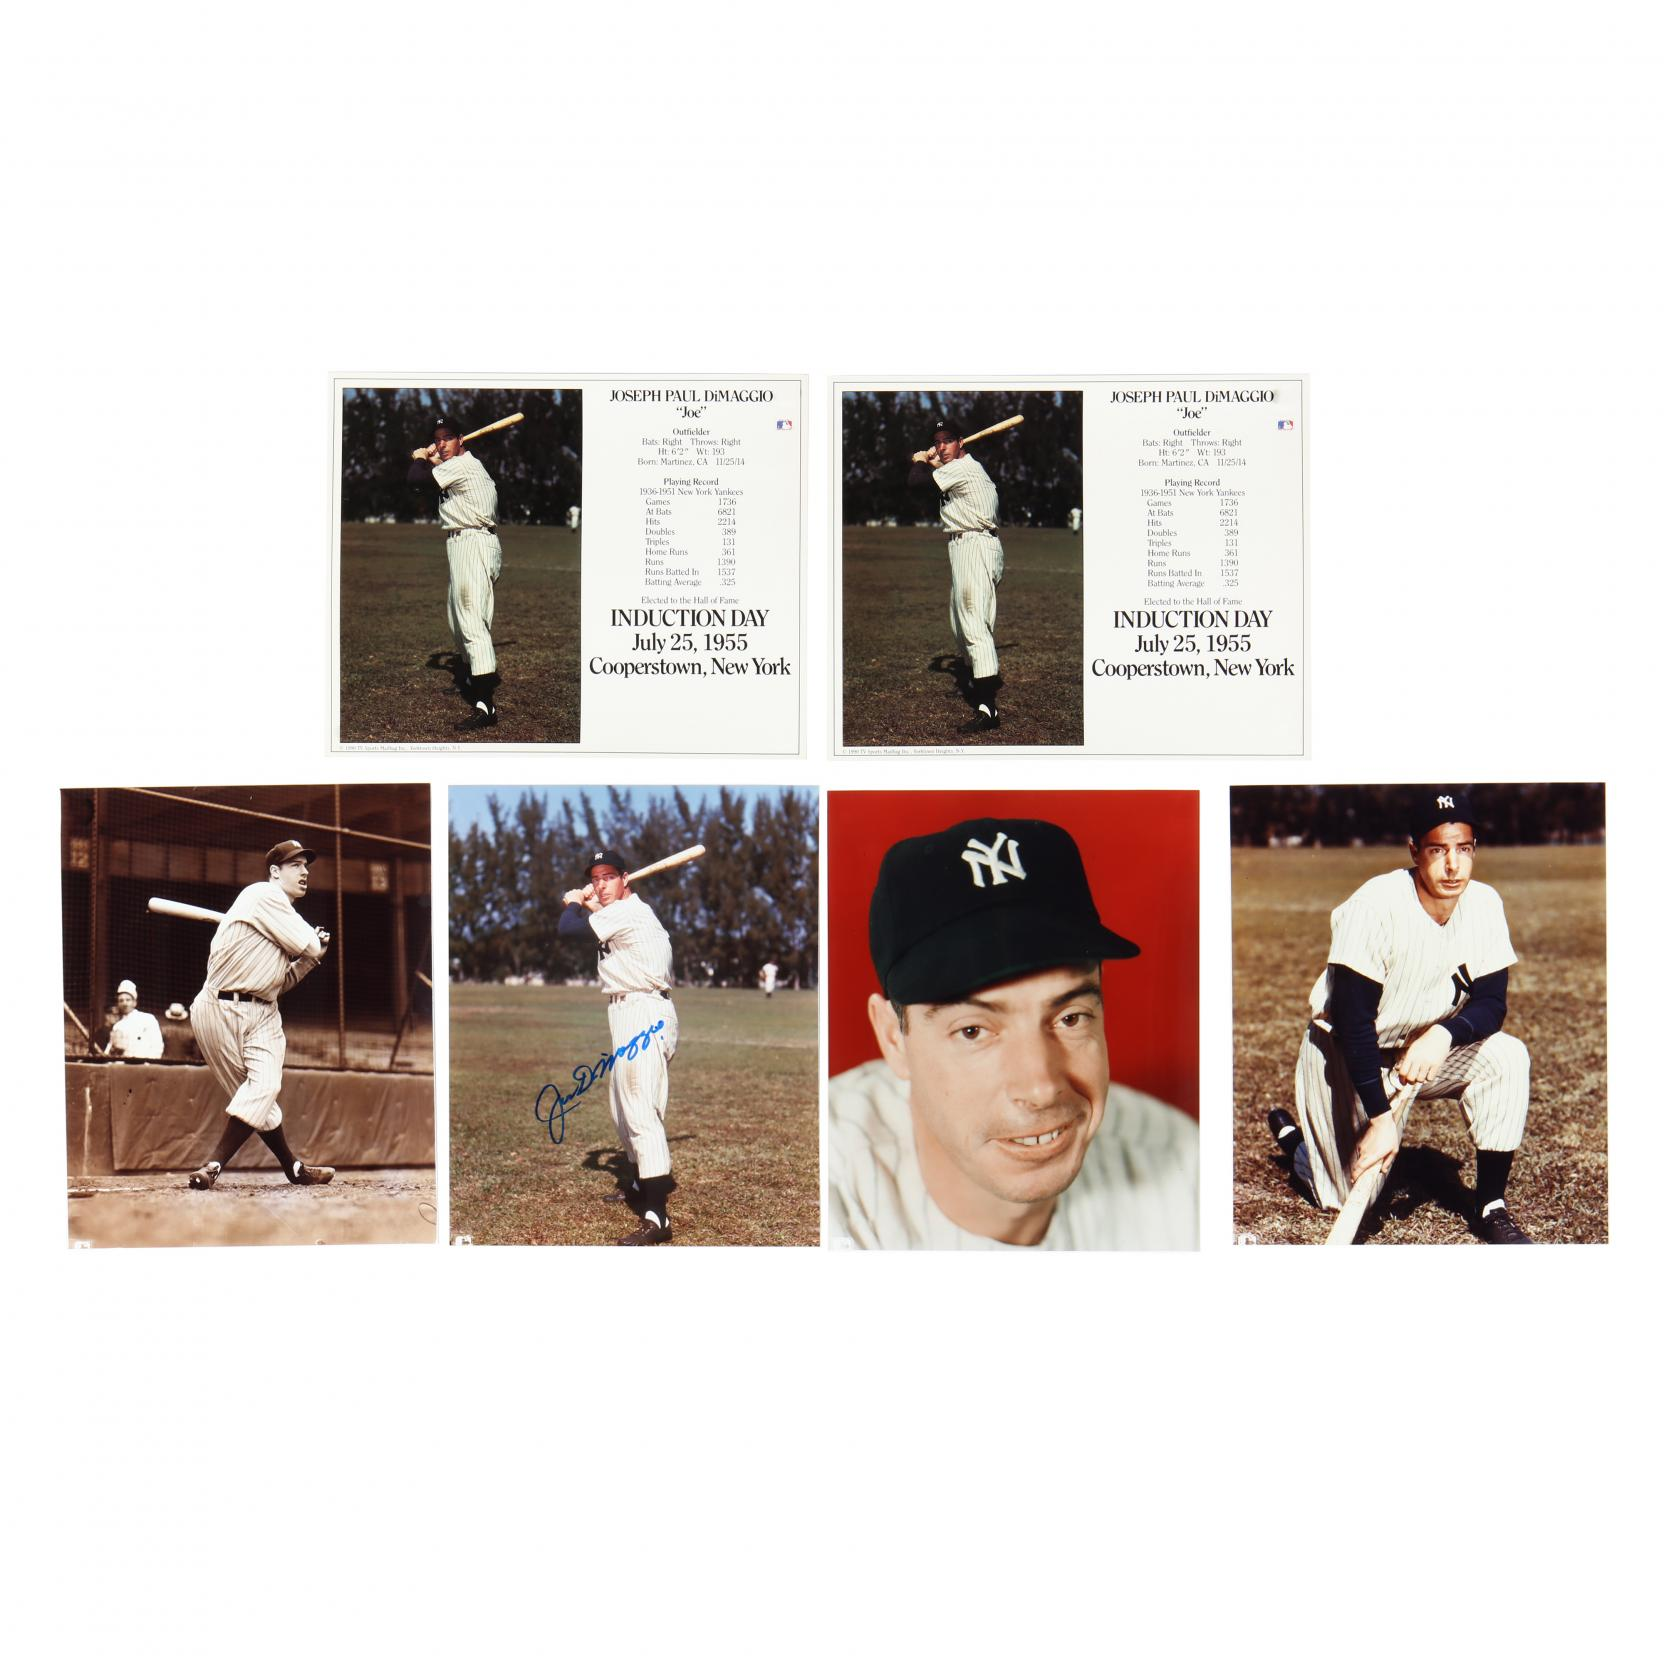 joe-dimaggio-photograph-collection-with-one-autographed-image